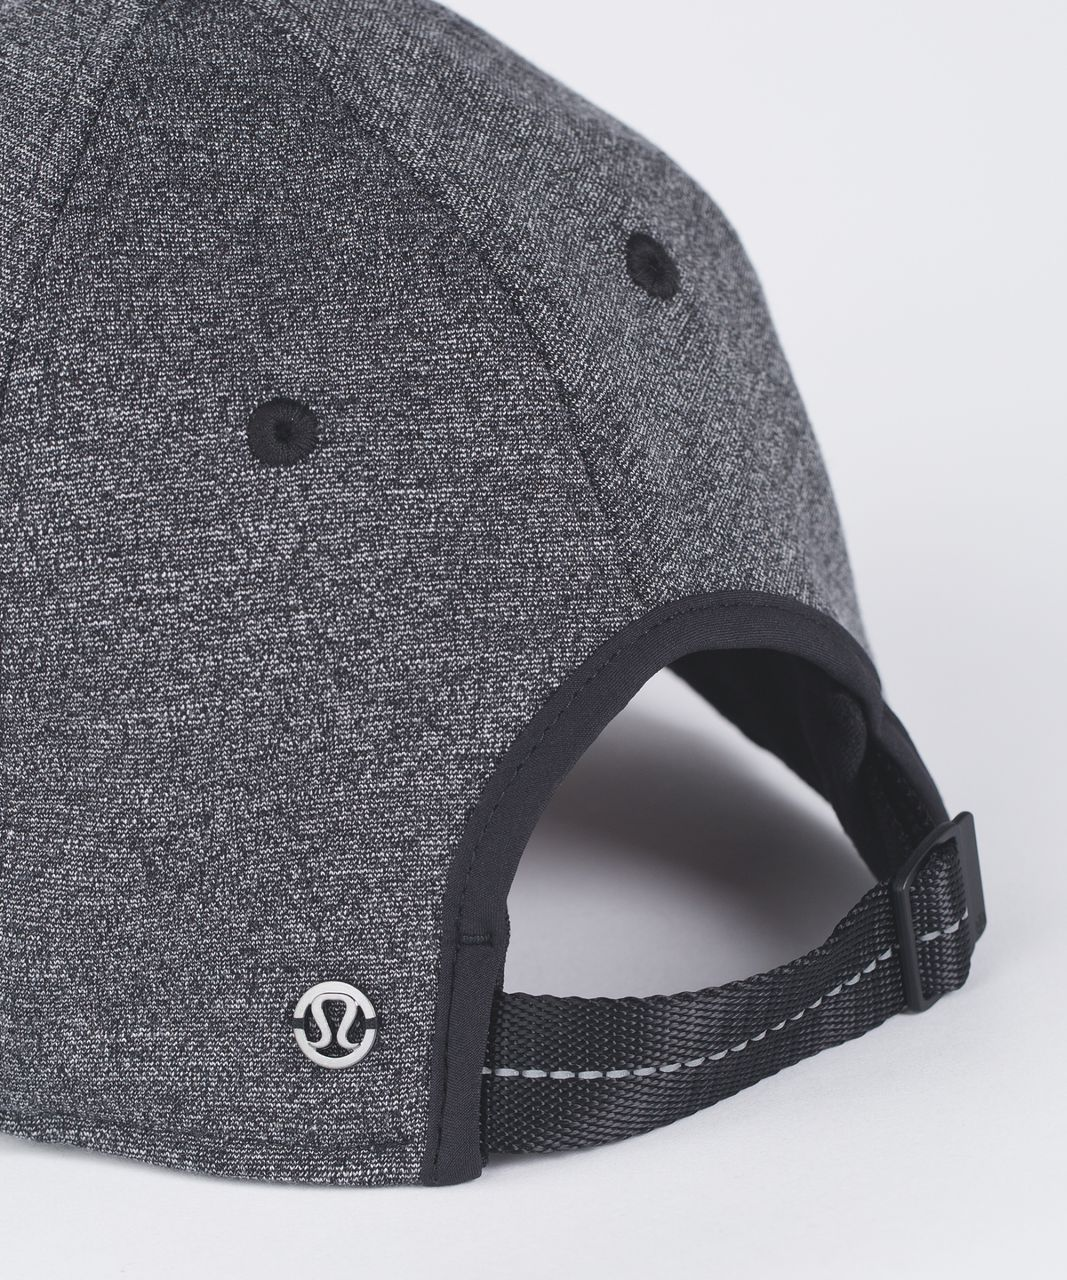 Lululemon Baller Hat - Heathered Black